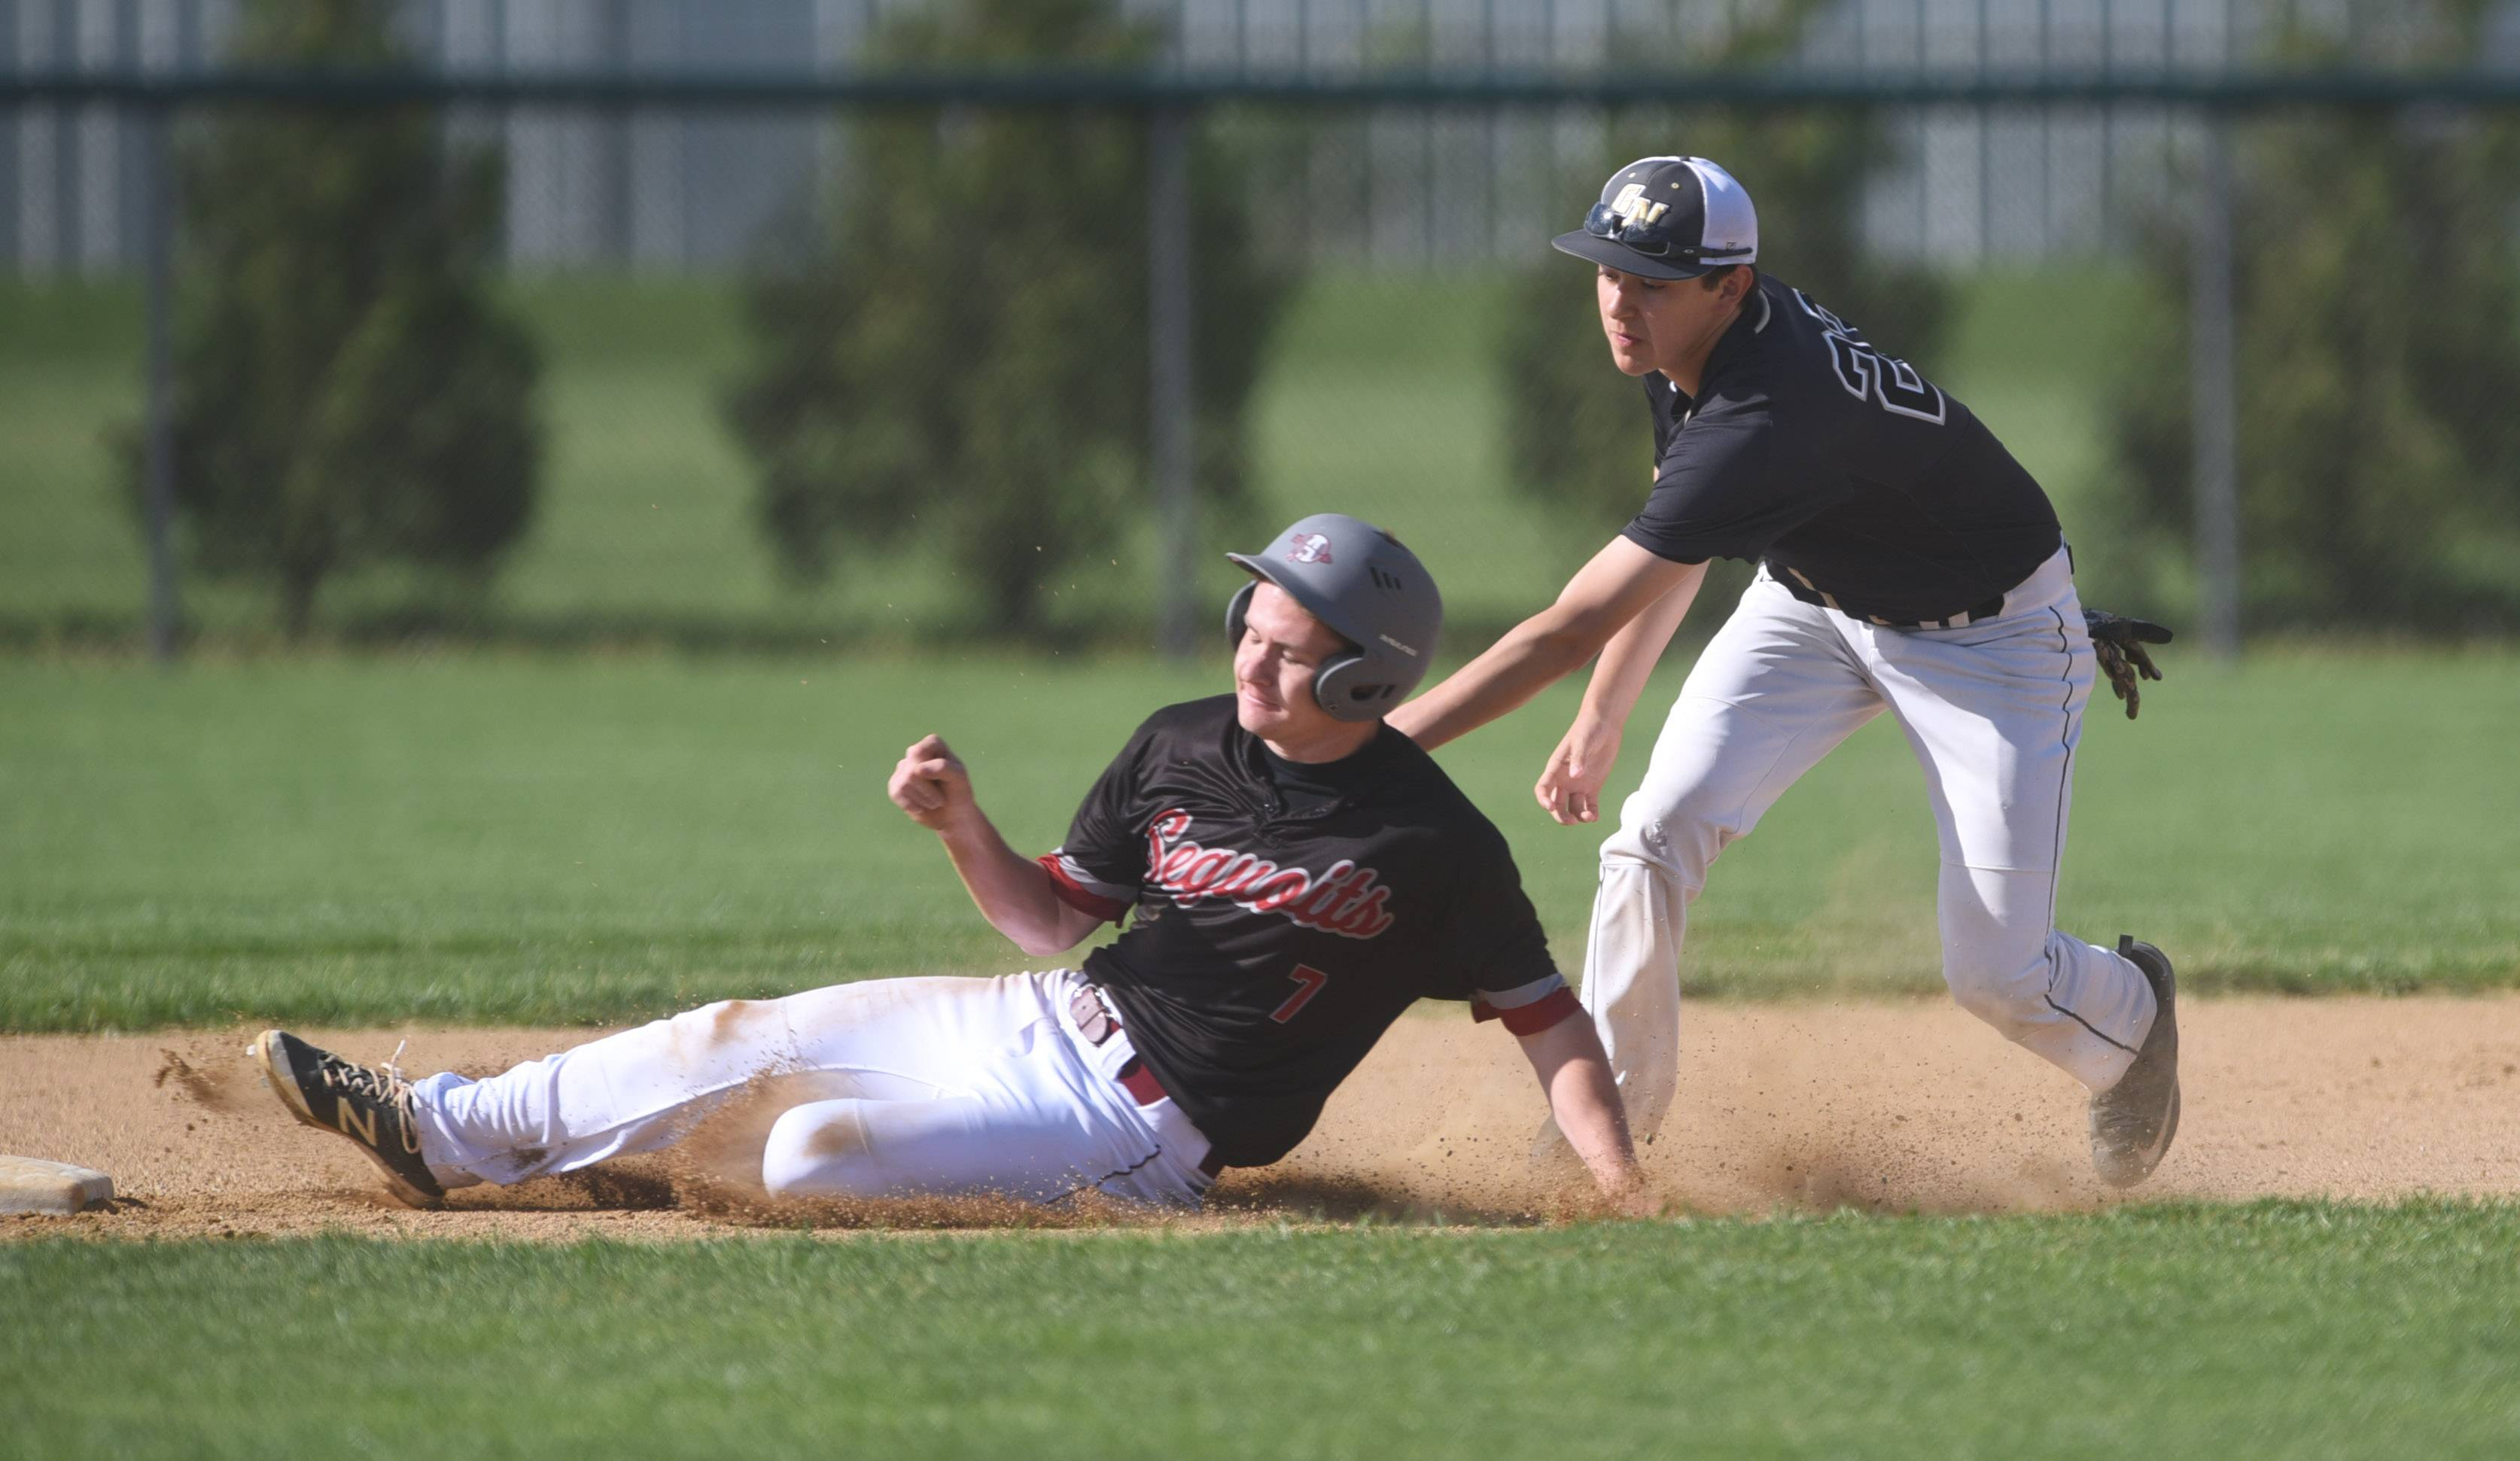 Antioch's Connor Geidner (7) slides into second base but is tagged out by Grayslake North's Sebastian Sancen during Thursday's game in Antioch.